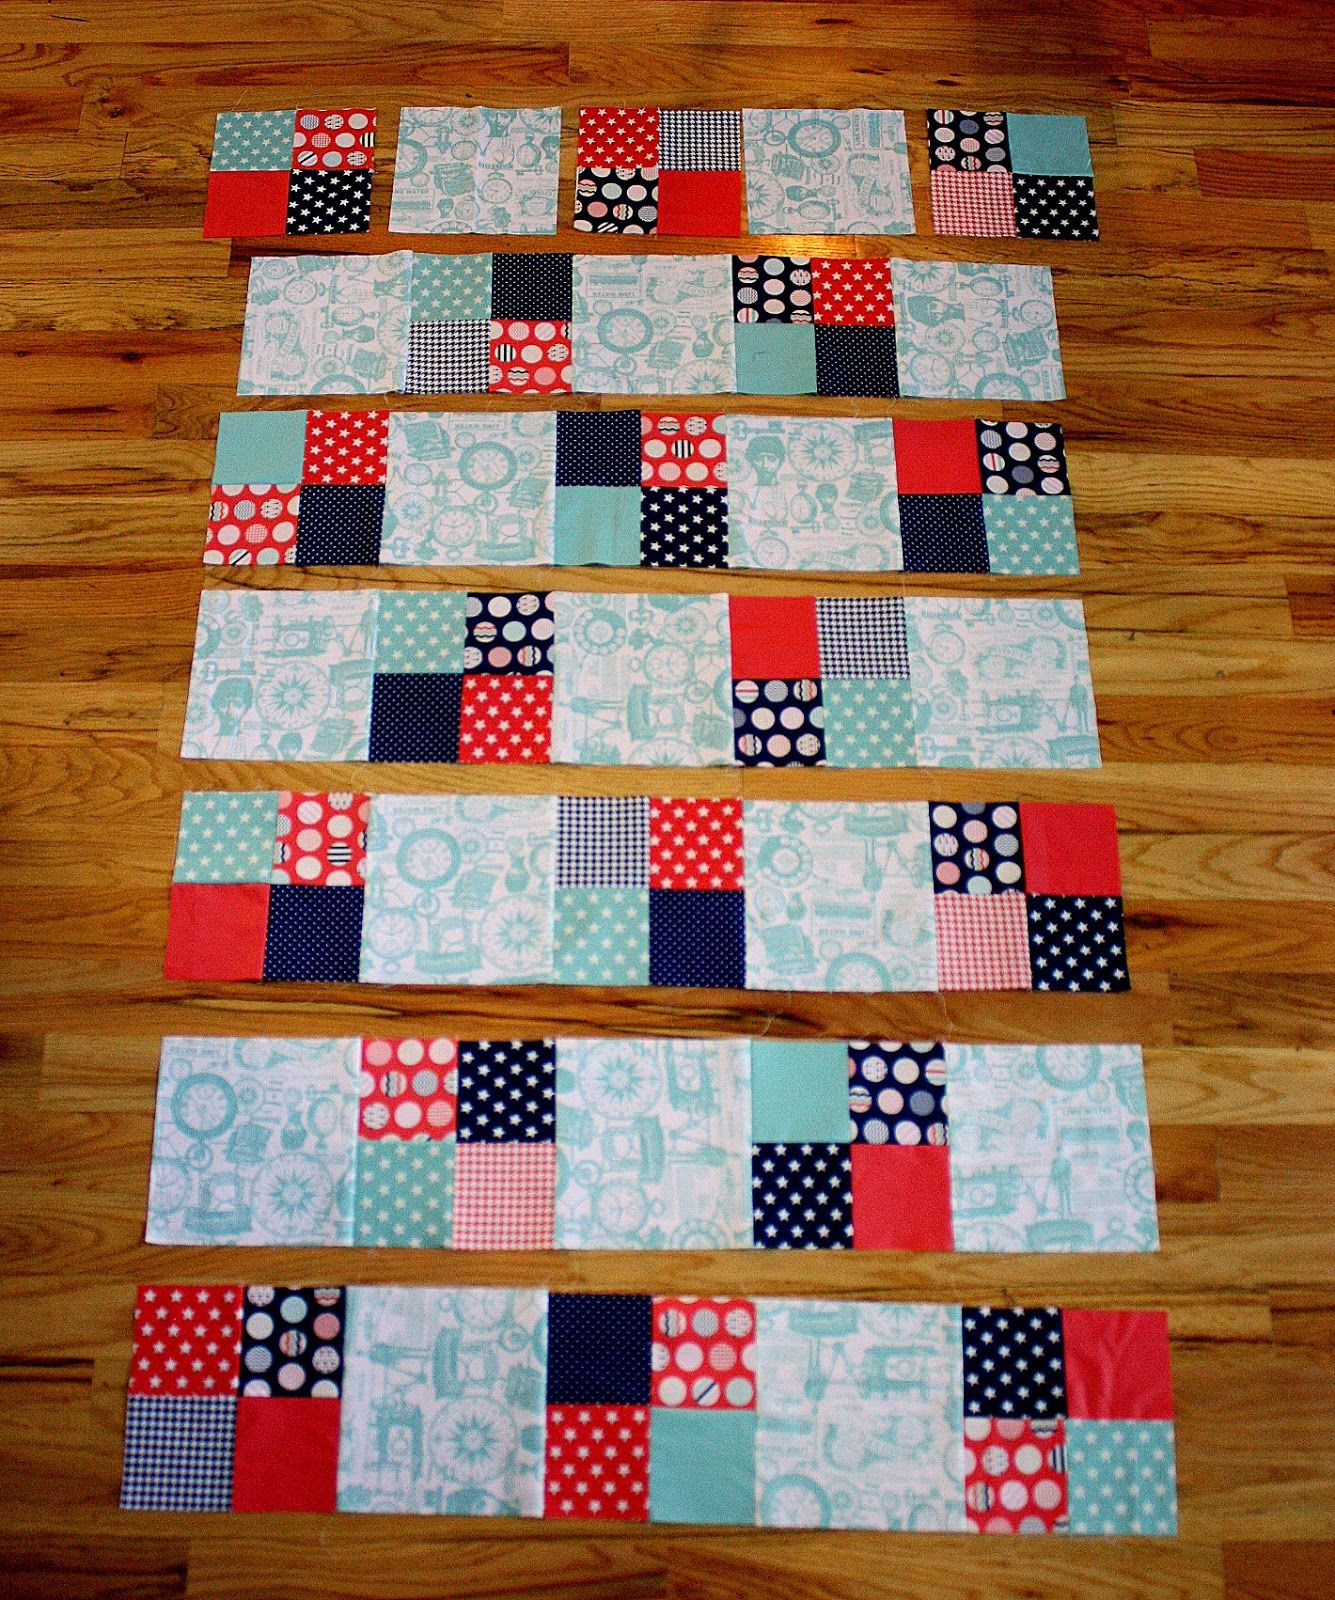 Free baby bed quilt patterns - This Is One Of My Favorite Go To Quilt Patterns For A Quick Baby Quilt